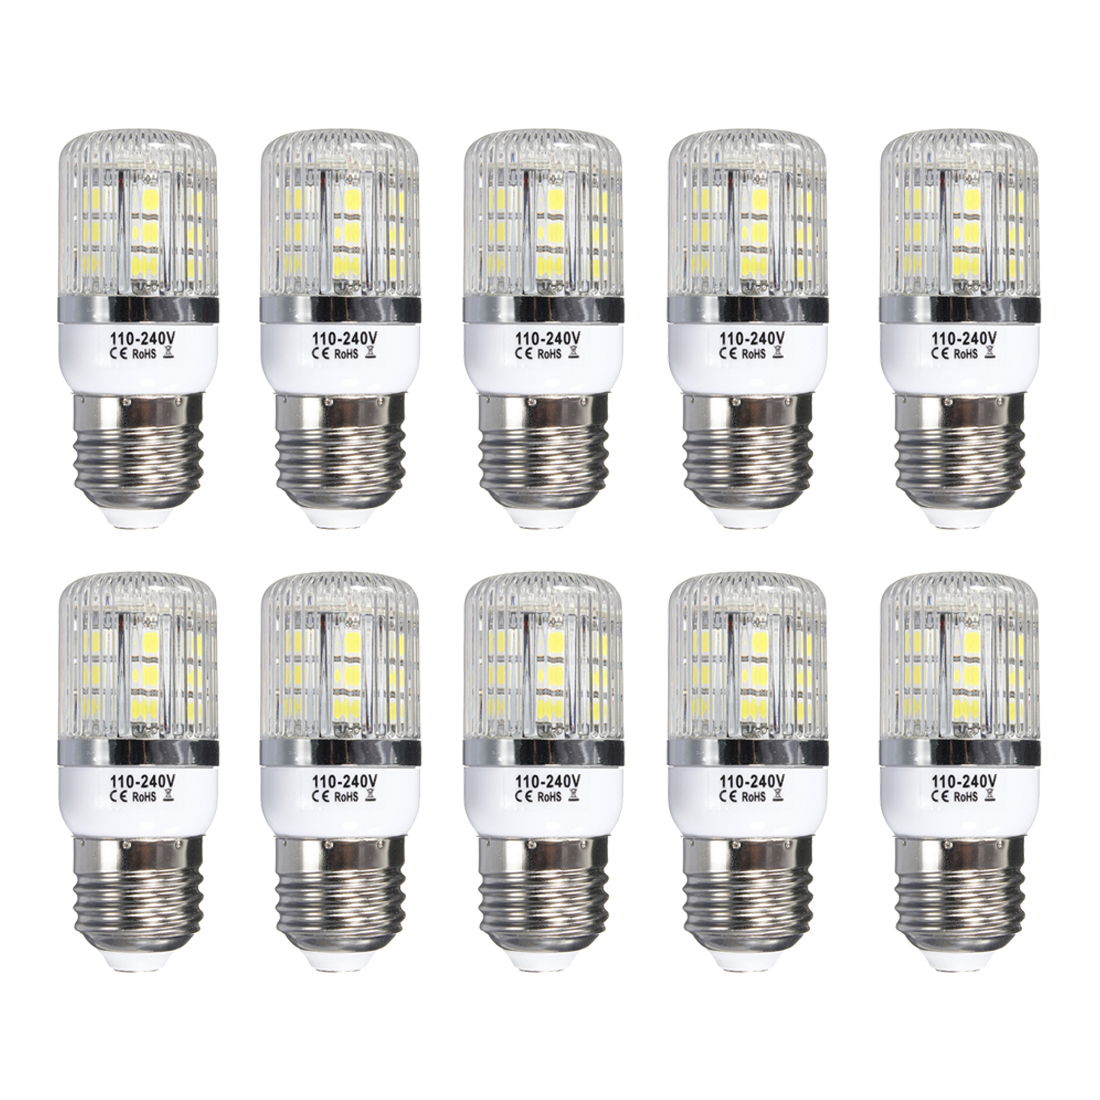 E27 5W Dimmable 27 SMD 5050 LED Corn Light Bulb Lamp Base Type:E27-5W Pure White(6000-6500K) Amount:10 Pcs